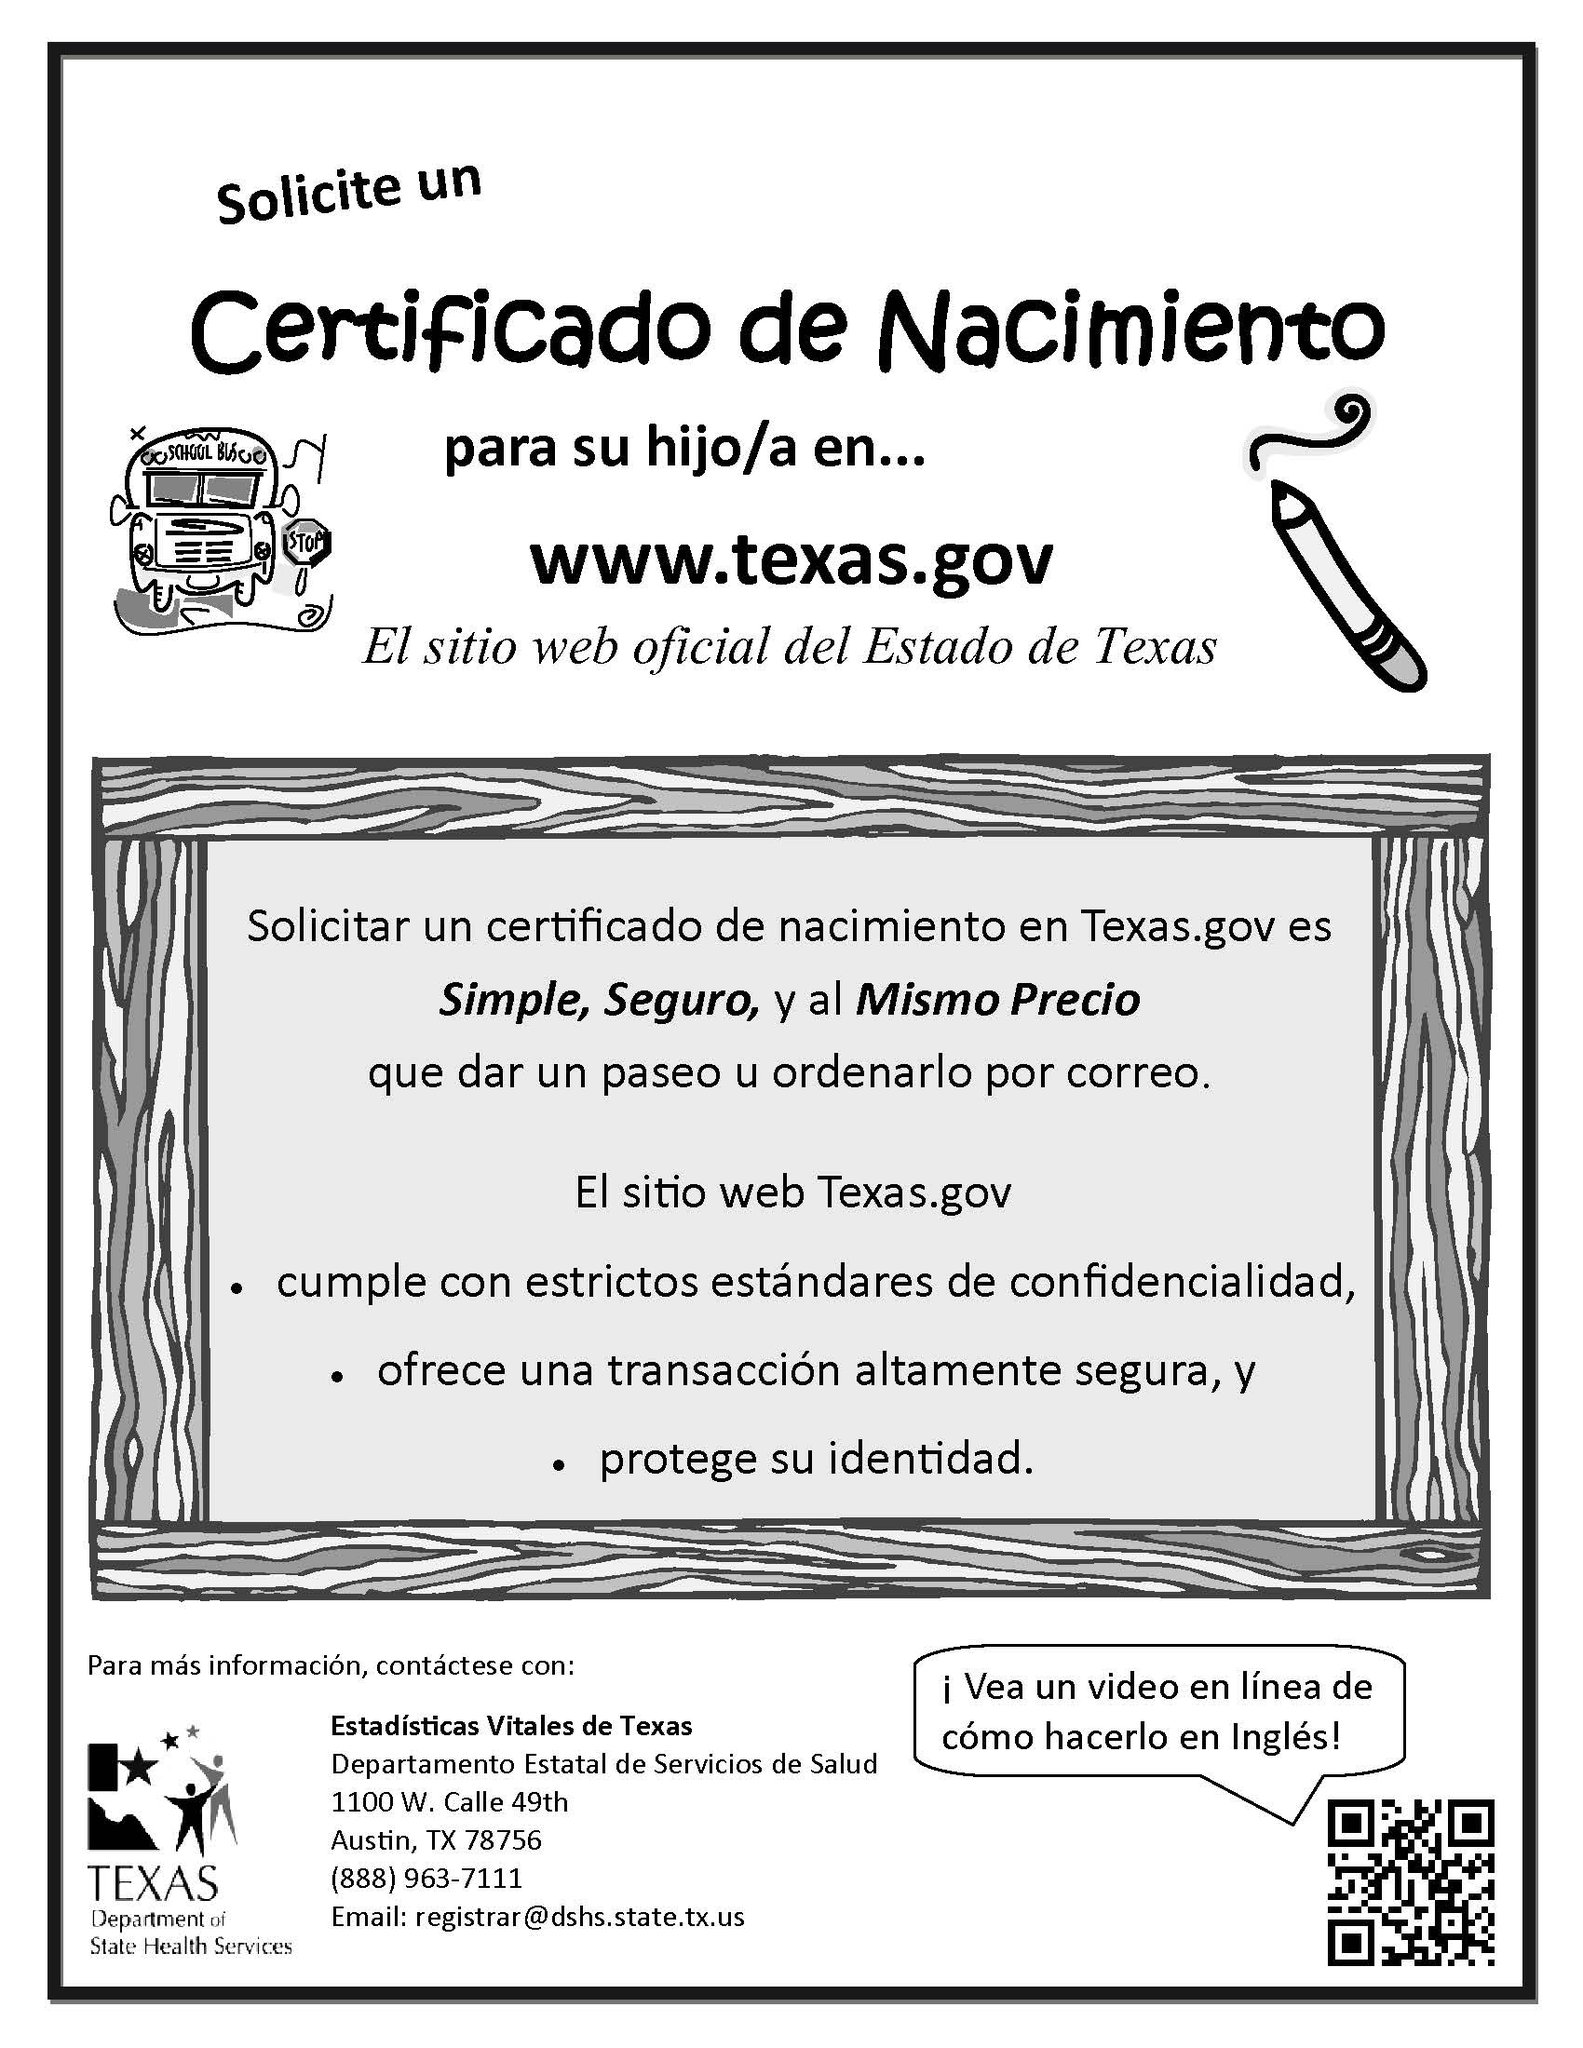 Unique pics of texas gov birth certificate business cards and ems isd on need a copy of your child s birth certificate aiddatafo Image collections